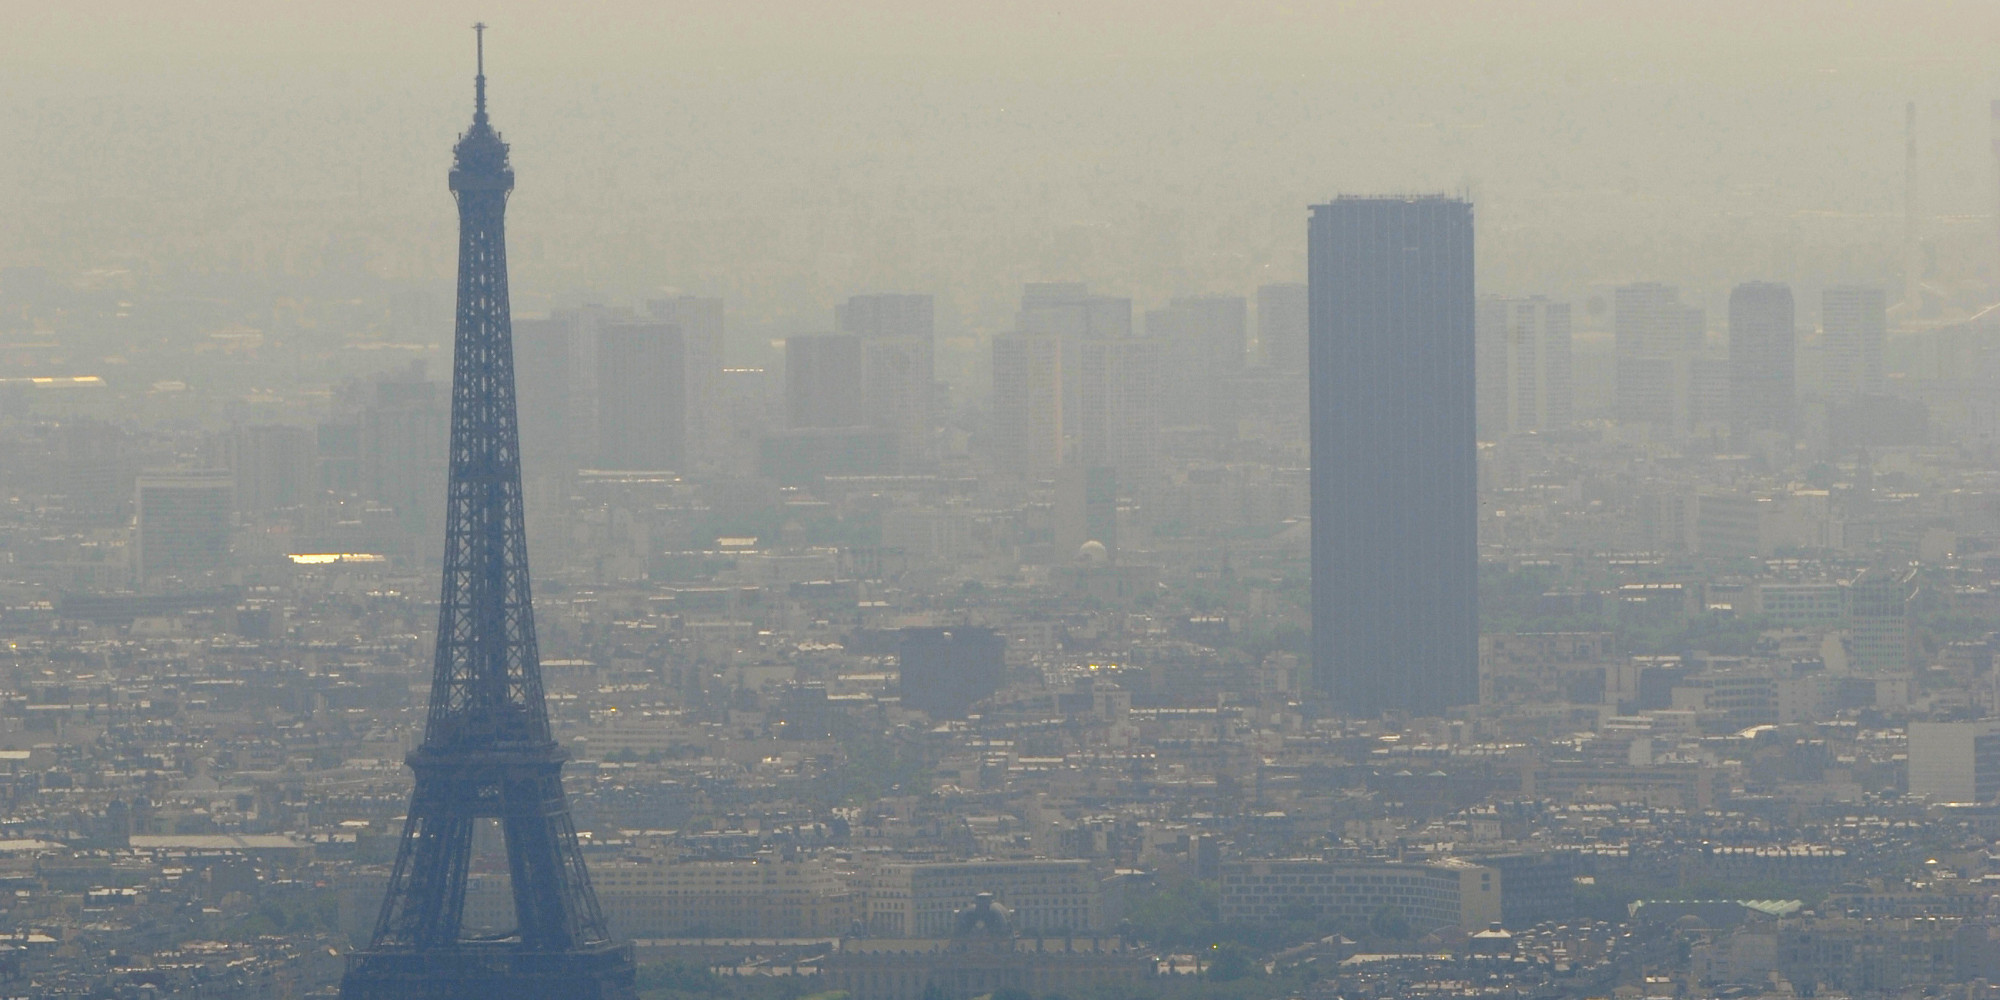 europe 39 s air pollution spurred by growing use of wood fires and diesel cars watchdog group says. Black Bedroom Furniture Sets. Home Design Ideas